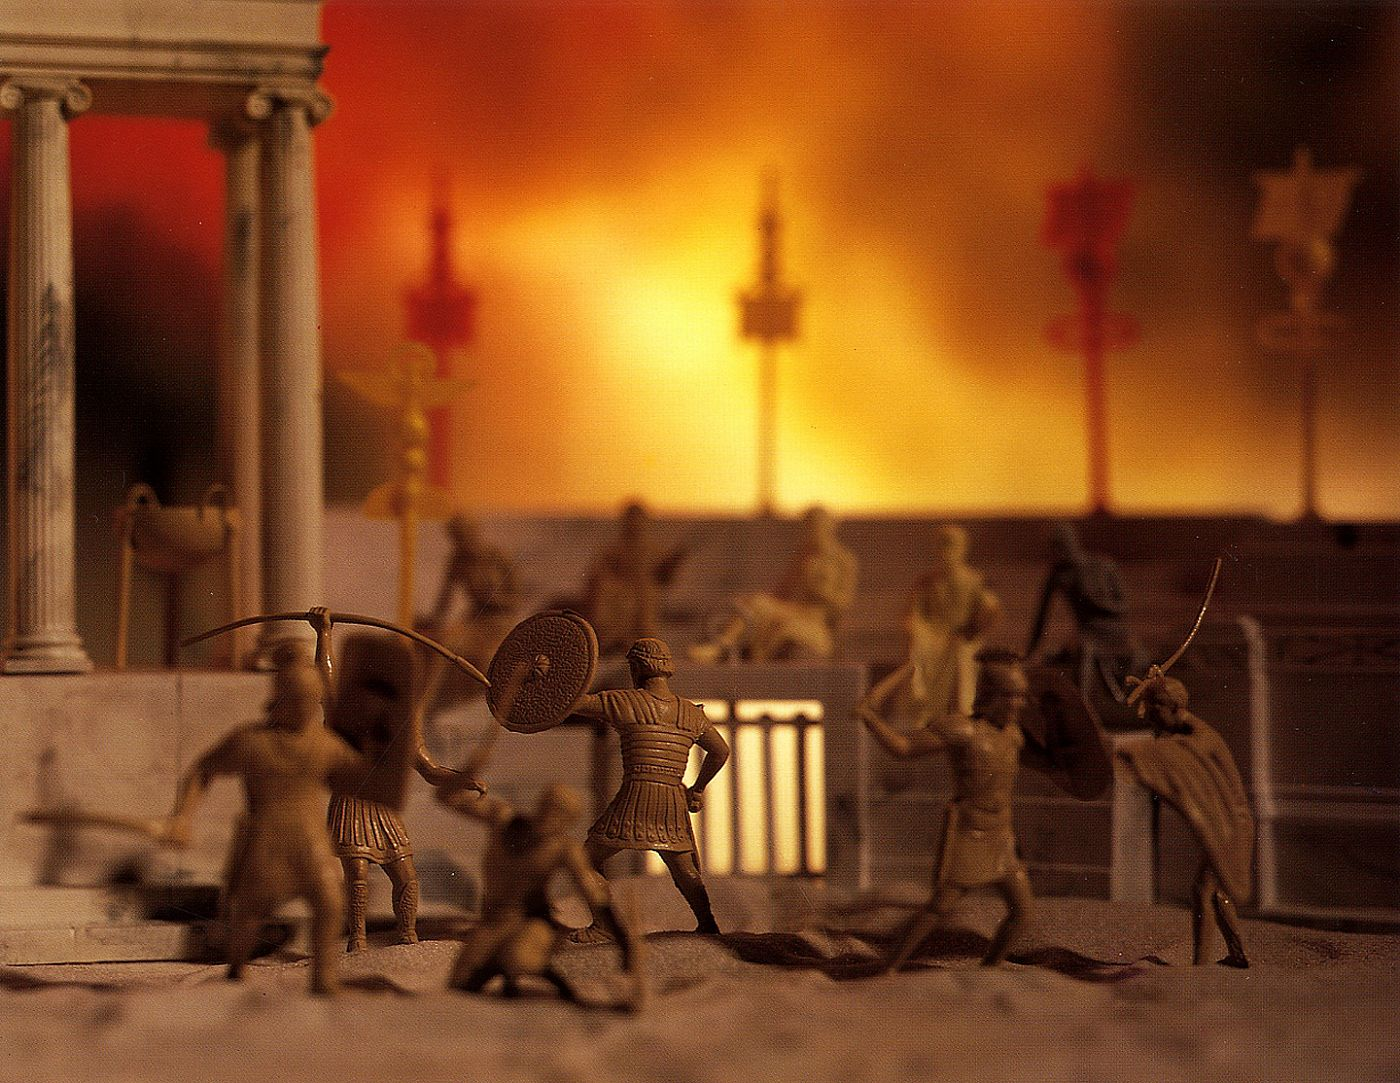 David Levinthal: Small Wonder: Worlds in a Box